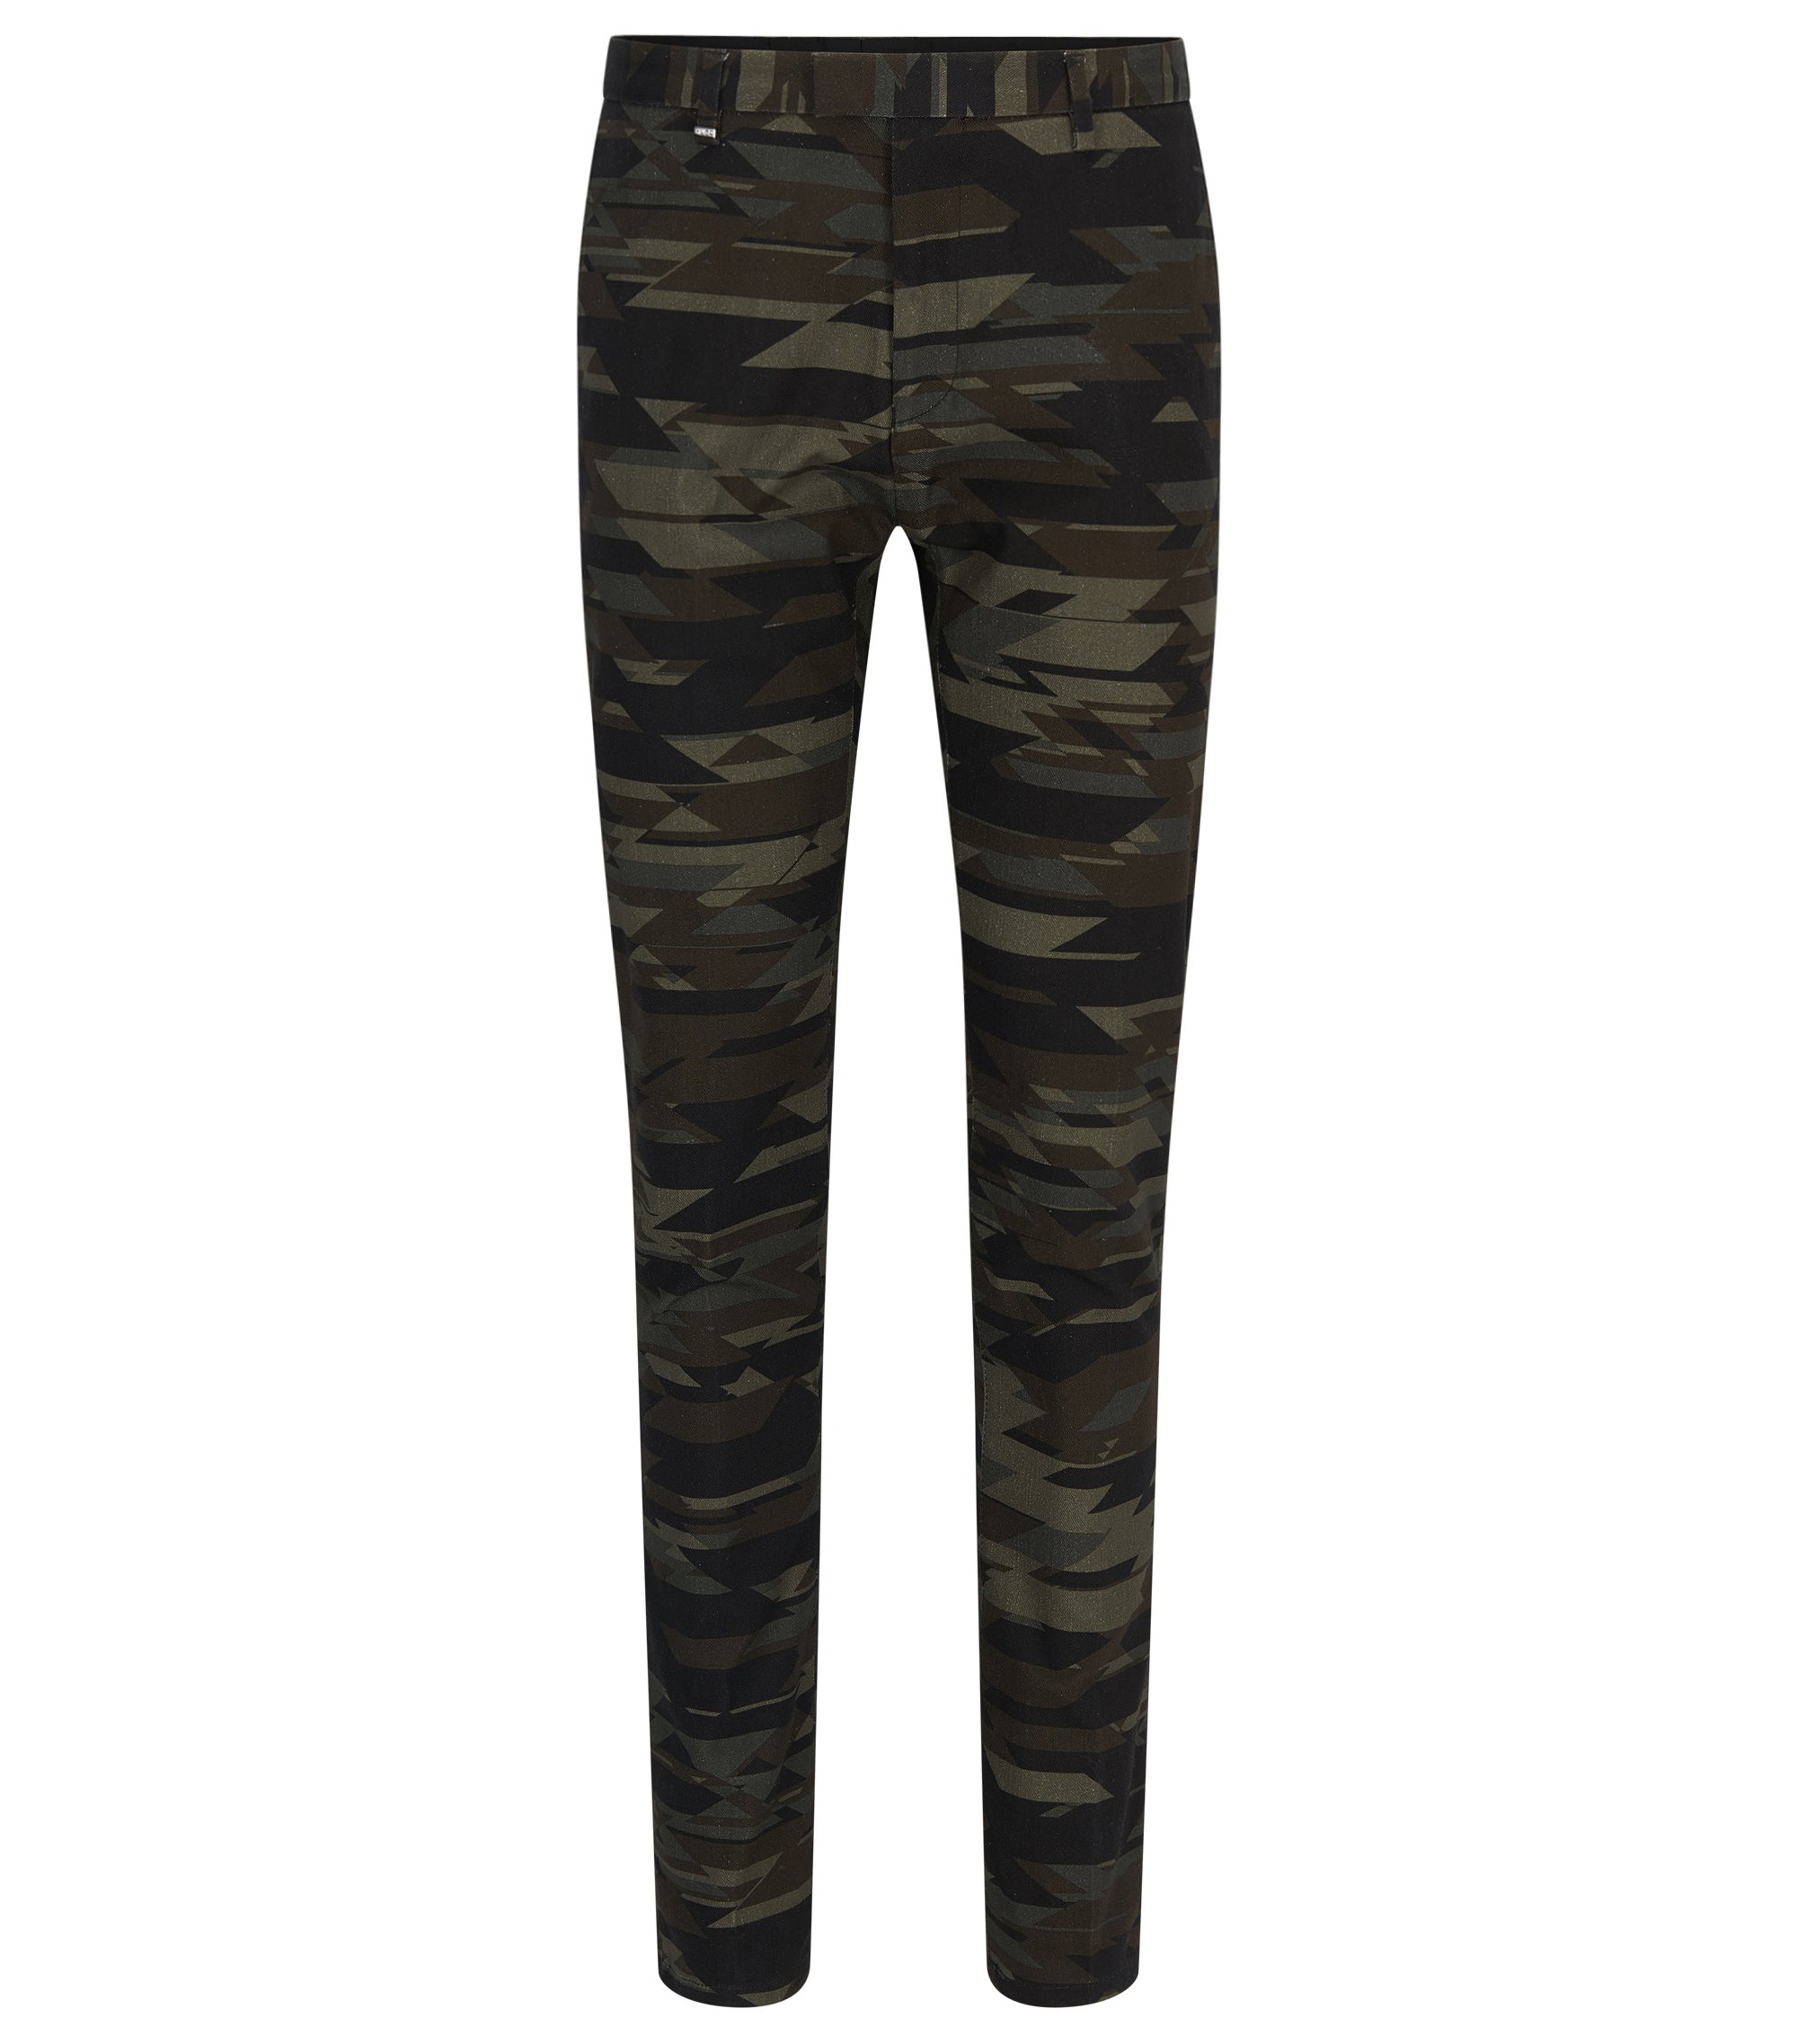 Camo Stretch Cotton Blend Pants, Regular Fit | Helgo, Patterned